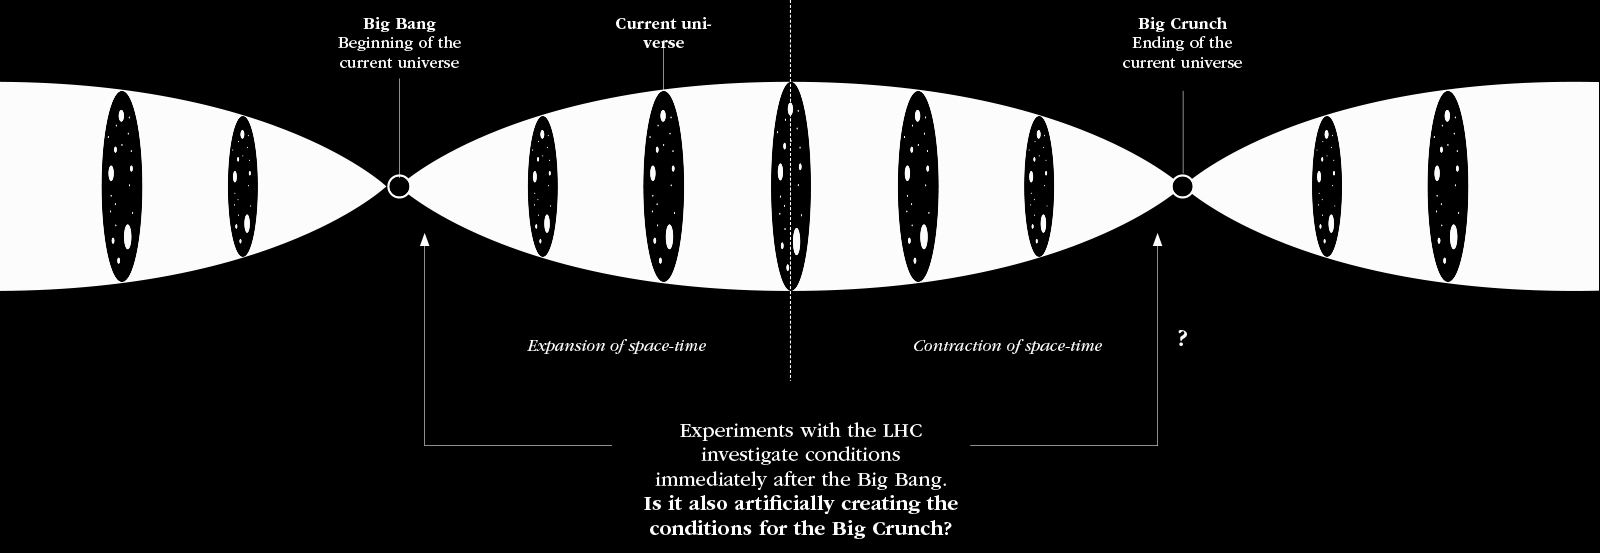 will the lhc accelerate the end of the universe?